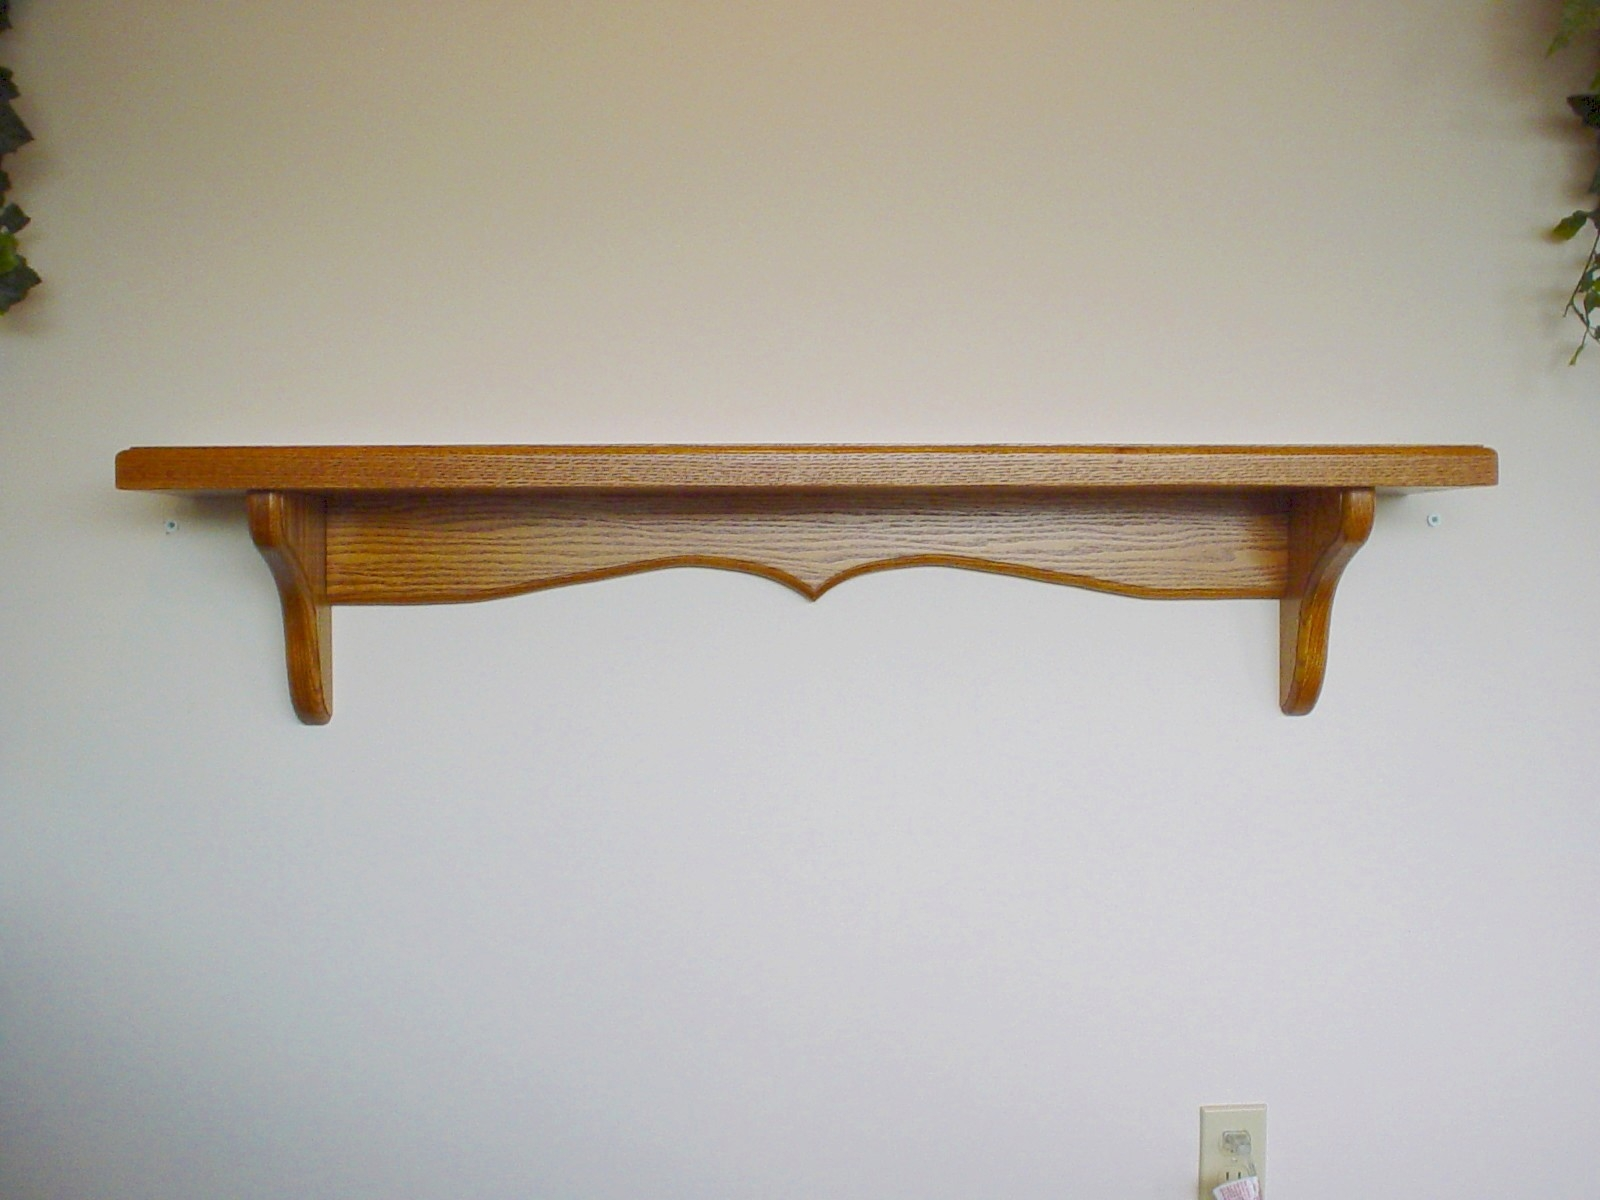 Wall Shelf Brackets Are Perfect Options Why Home Decorations With Wall Shelf (View 9 of 15)